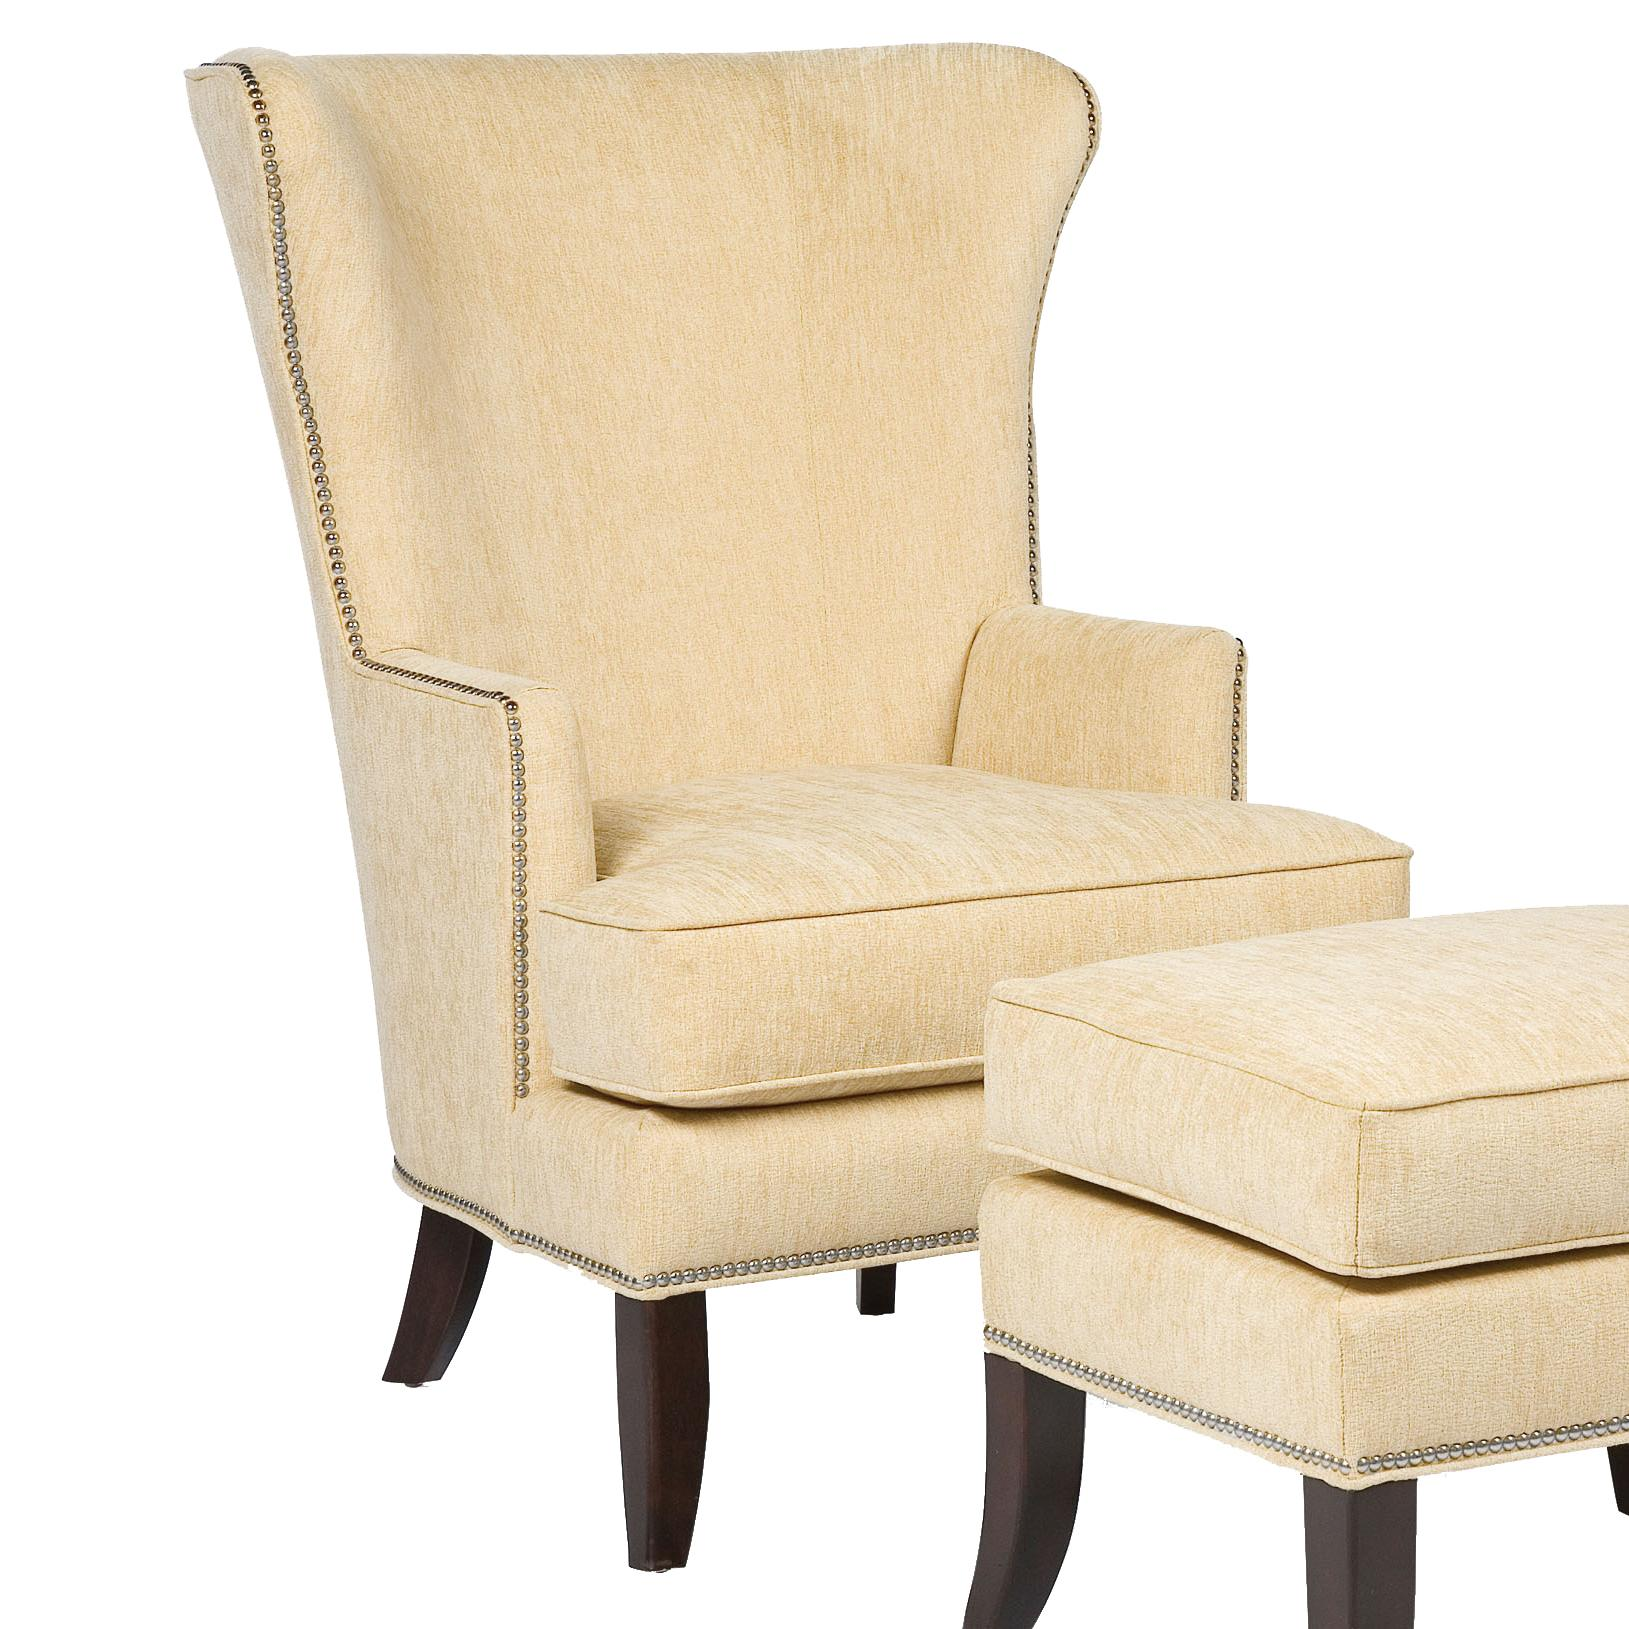 Fairfield Chairs Contemporary Wing Chair  - Item Number: 5147-01